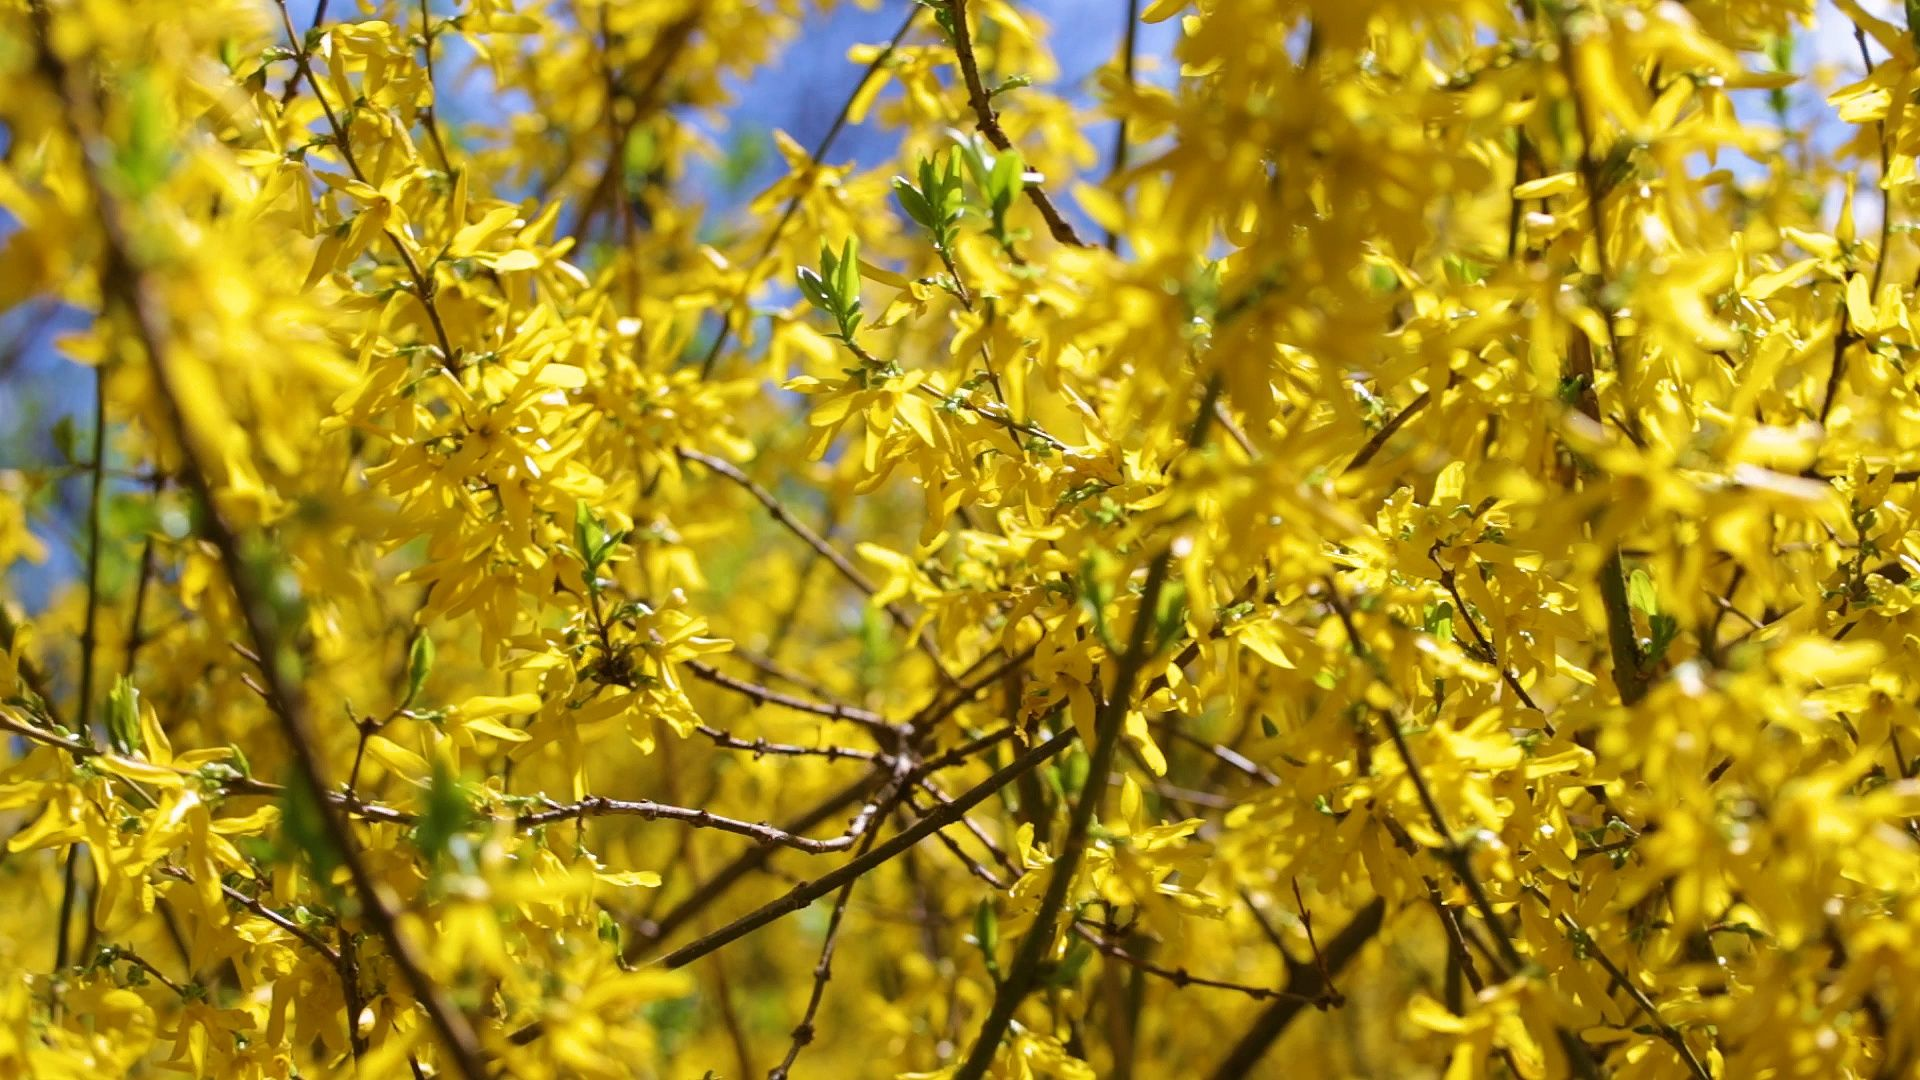 Yellow Spring Blooming Nature Background Stock Footage Blooming Spring Yellow Nature Nature Backgrounds Yellow Springs Nature